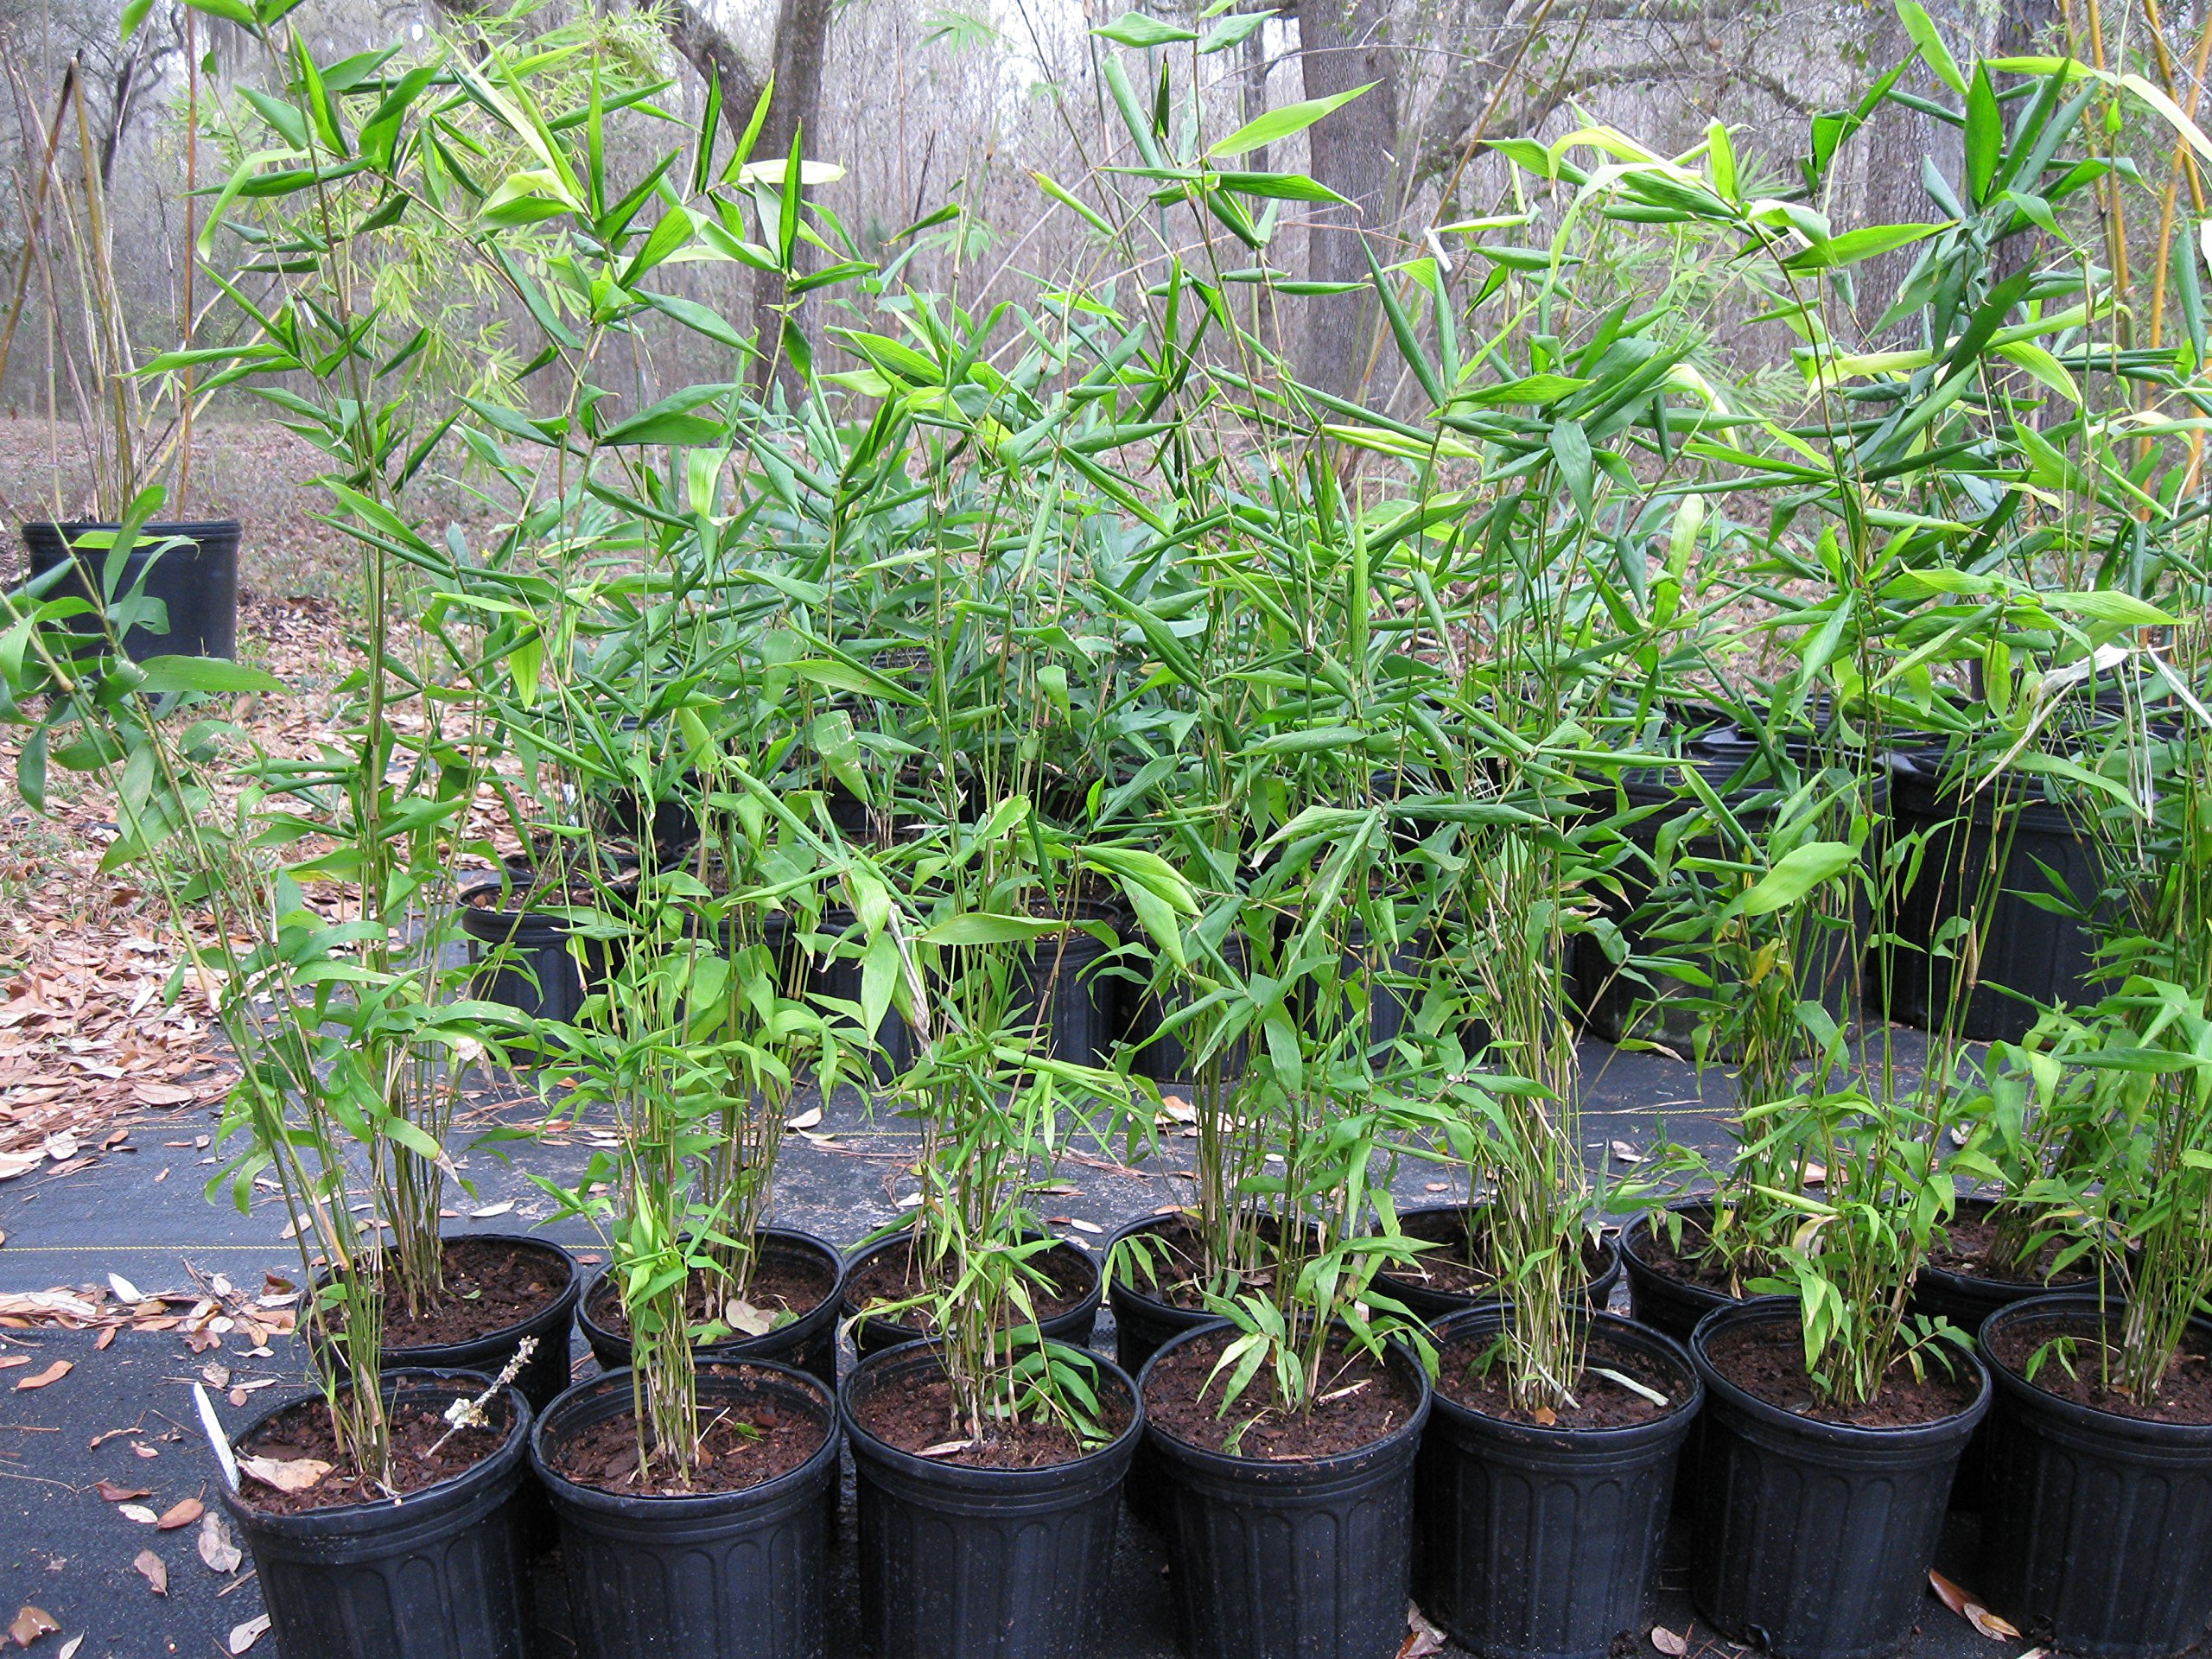 Box of 4 Plants - Bambusa Oldhamii Giant Timber Bamboo - LARGE 1 GALLON PLANTS - Non-Invasive Clumping Variety t